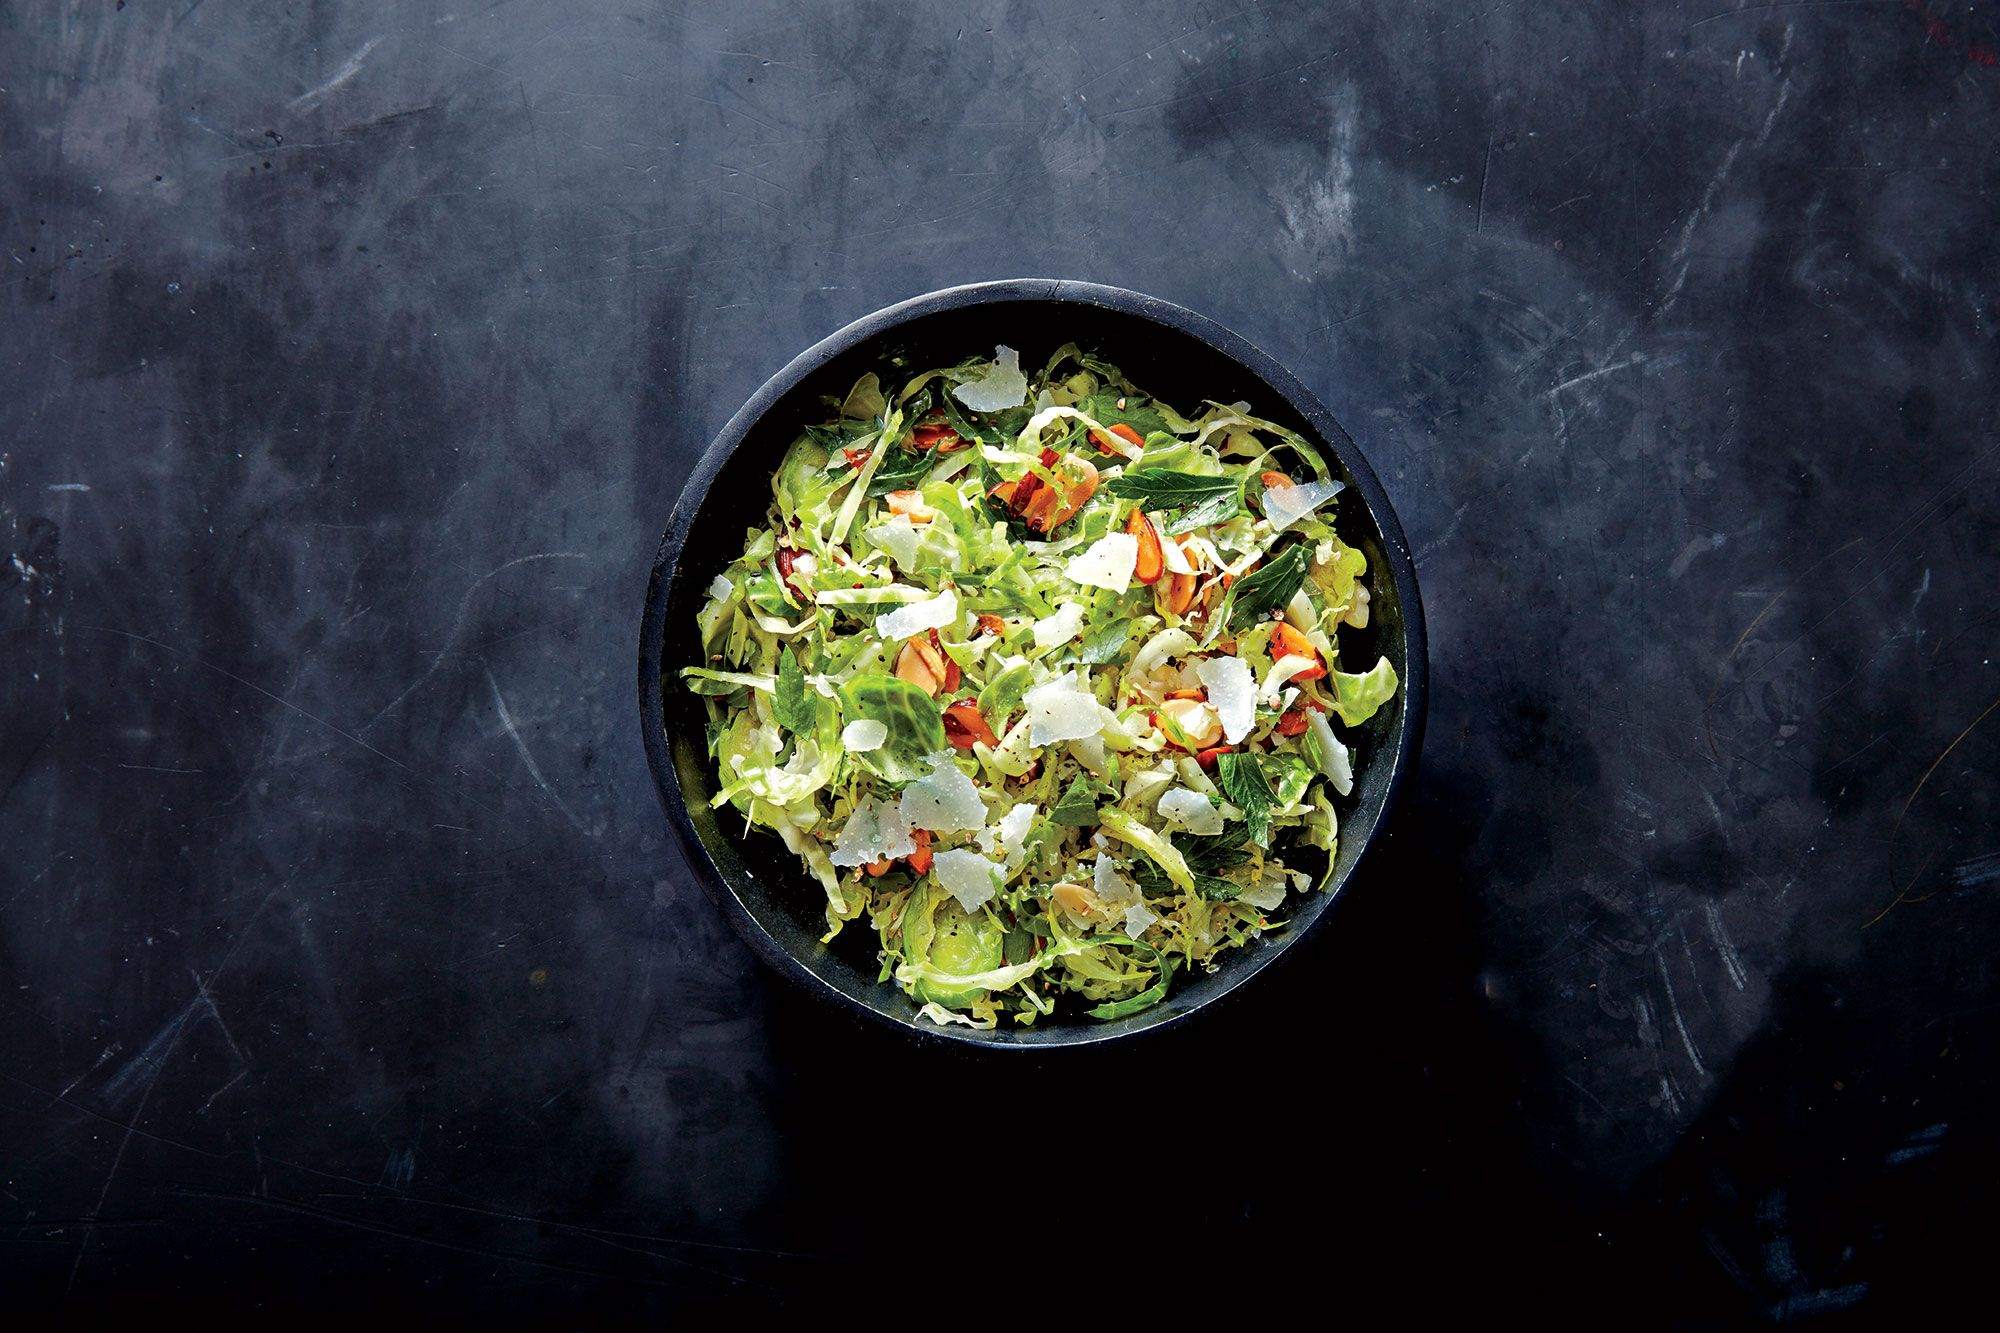 Caesar Brussels Sprouts Salad with Almonds | There's a bounty of prepared produce in the produce section of the supermarket these days, and we're happy to take advantage. Think of preshredded Brussels sprouts as fall's answer to coleslaw mix, and use it in salads, slaws, and quick sautés. If you can't find them, trim whole Brussels sprouts and thinly slice. Here the sprouts get the Caesar treatment, with a garlicky vinaigrette and toasted sliced almonds.